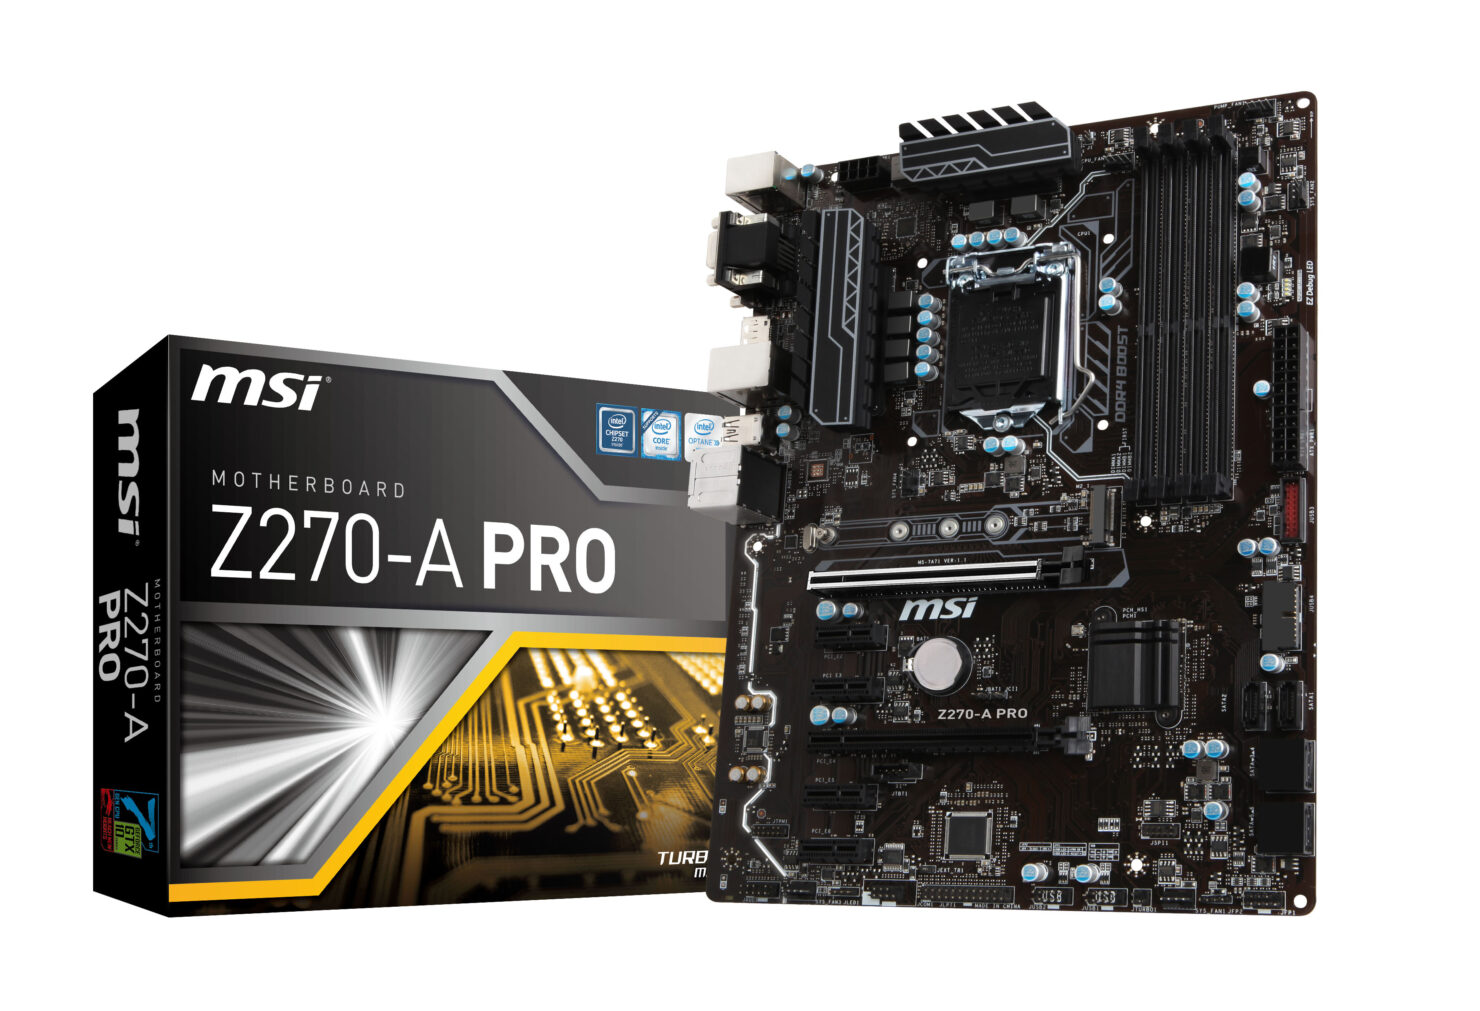 msi-z270_a_pro-product_pictures-boxshot